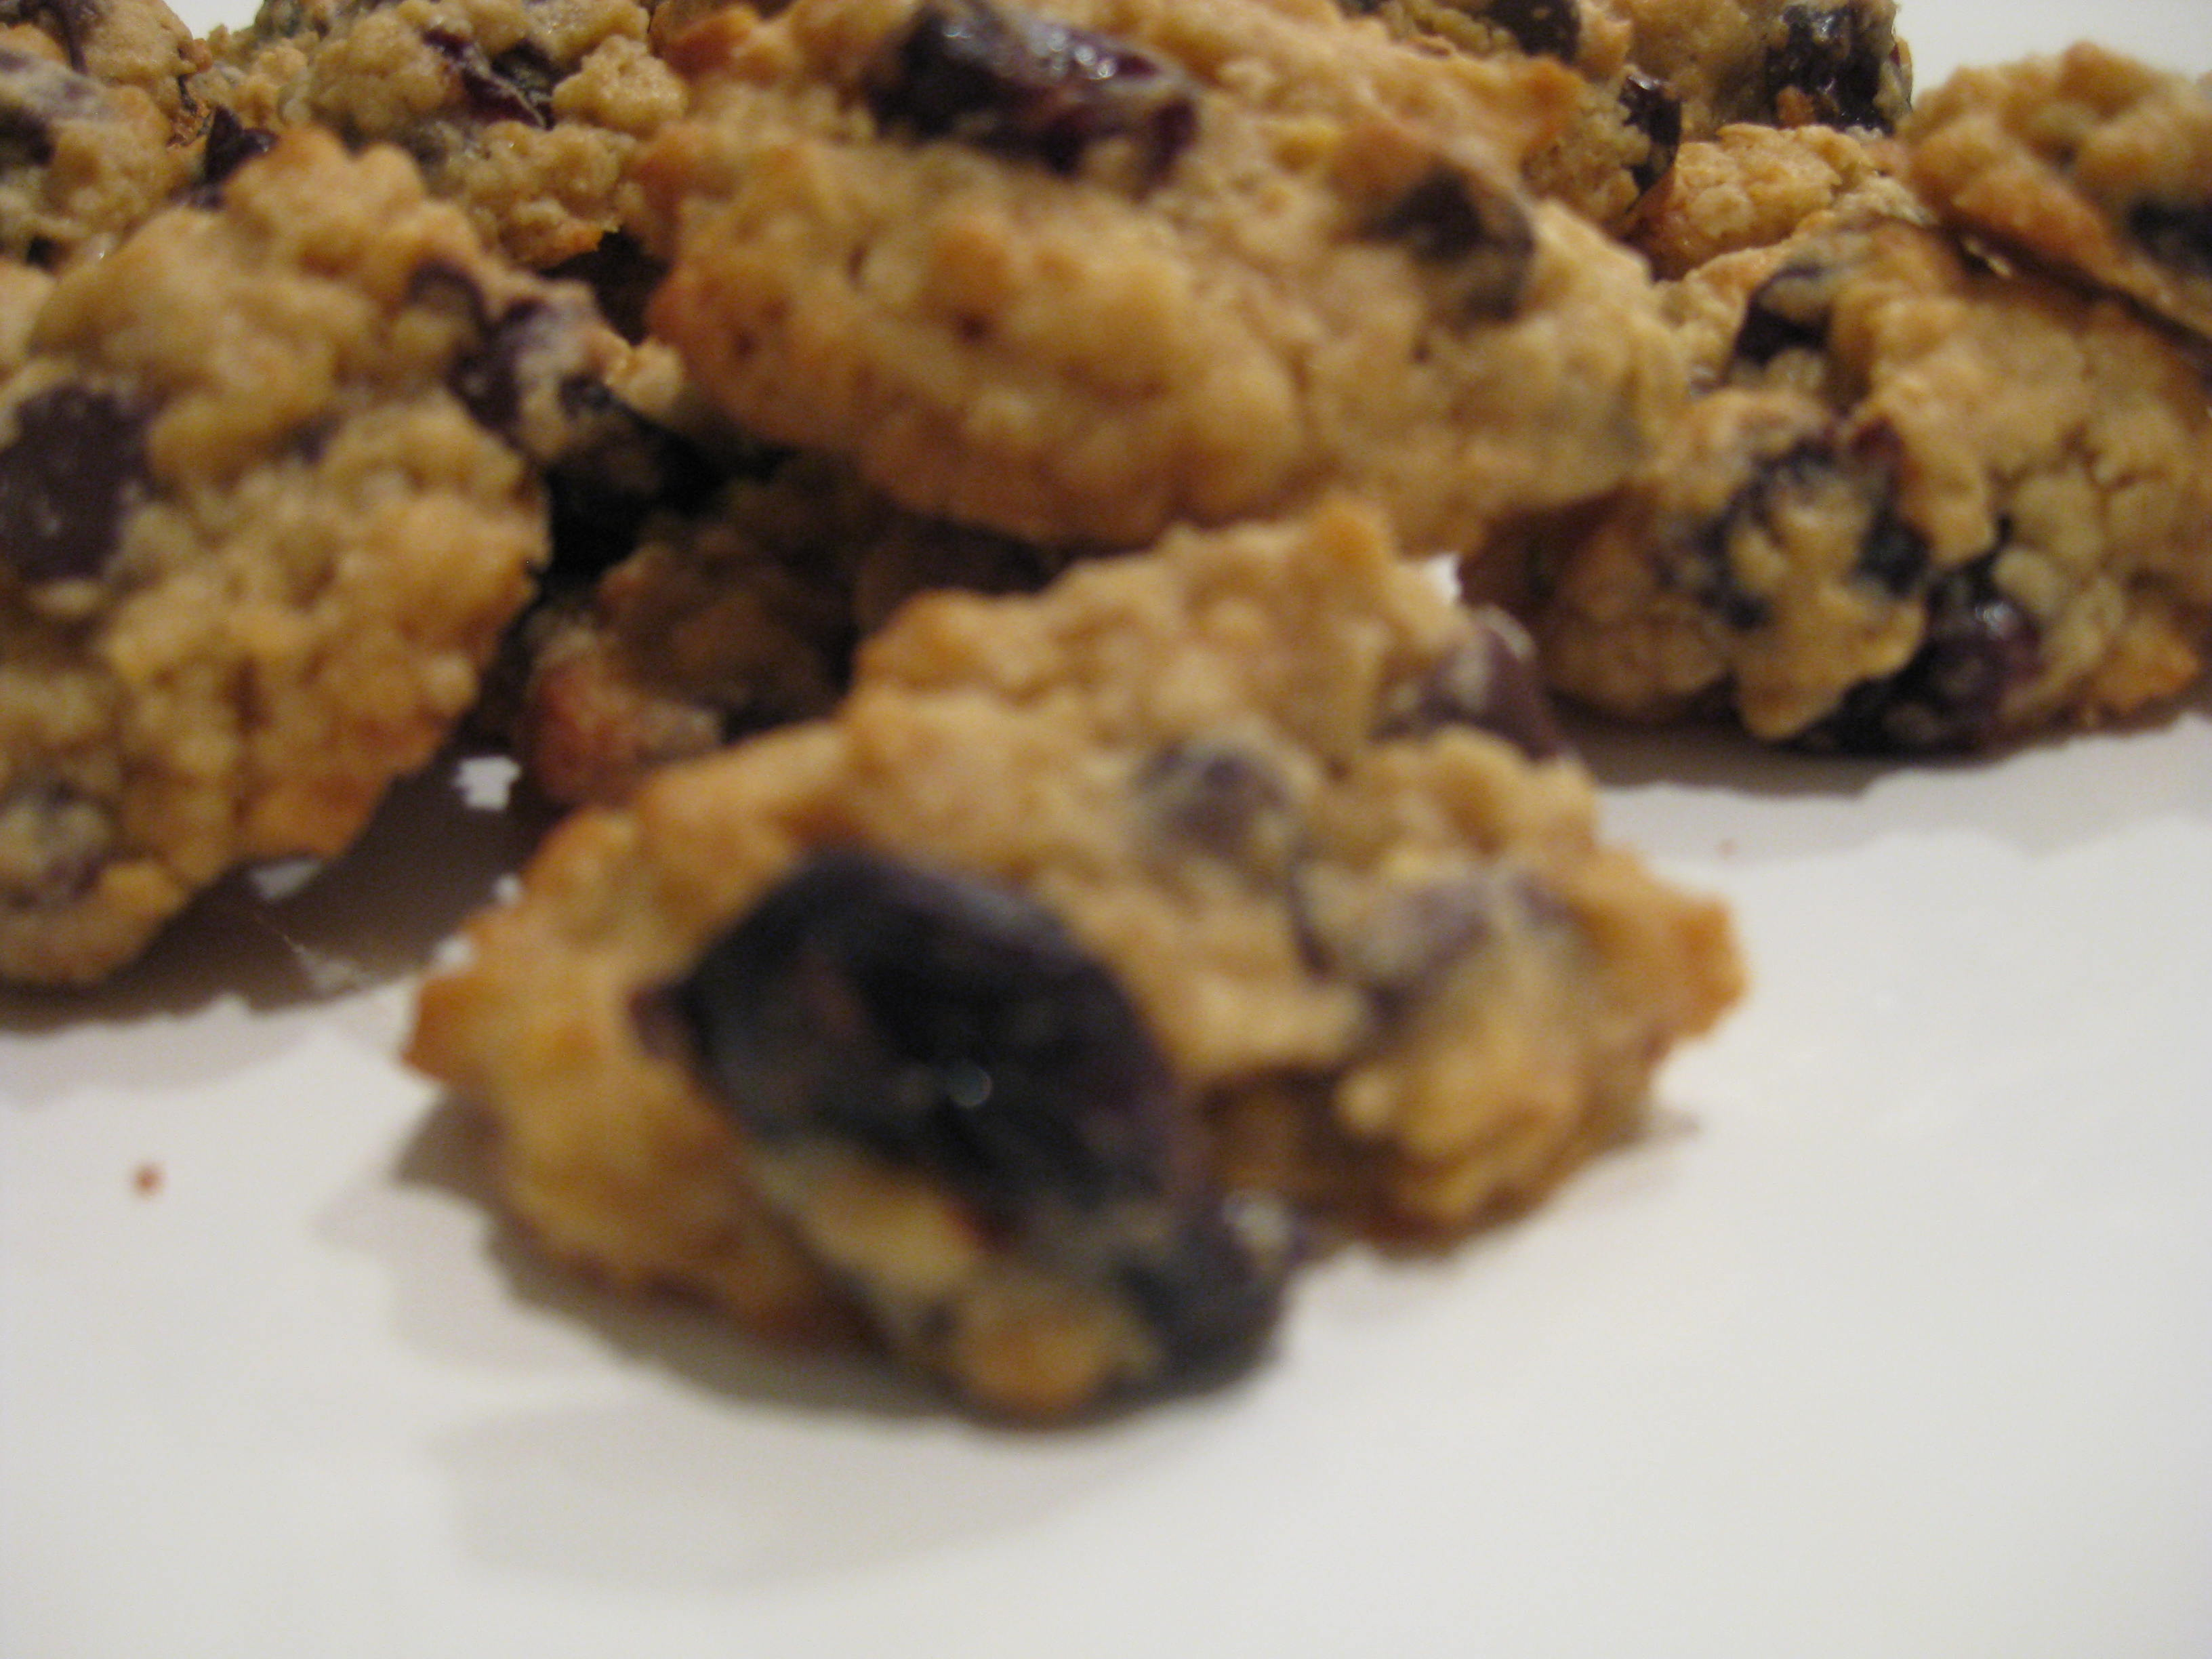 but I figure the oats (whole grains! fibre!) and dried tart cherries ...